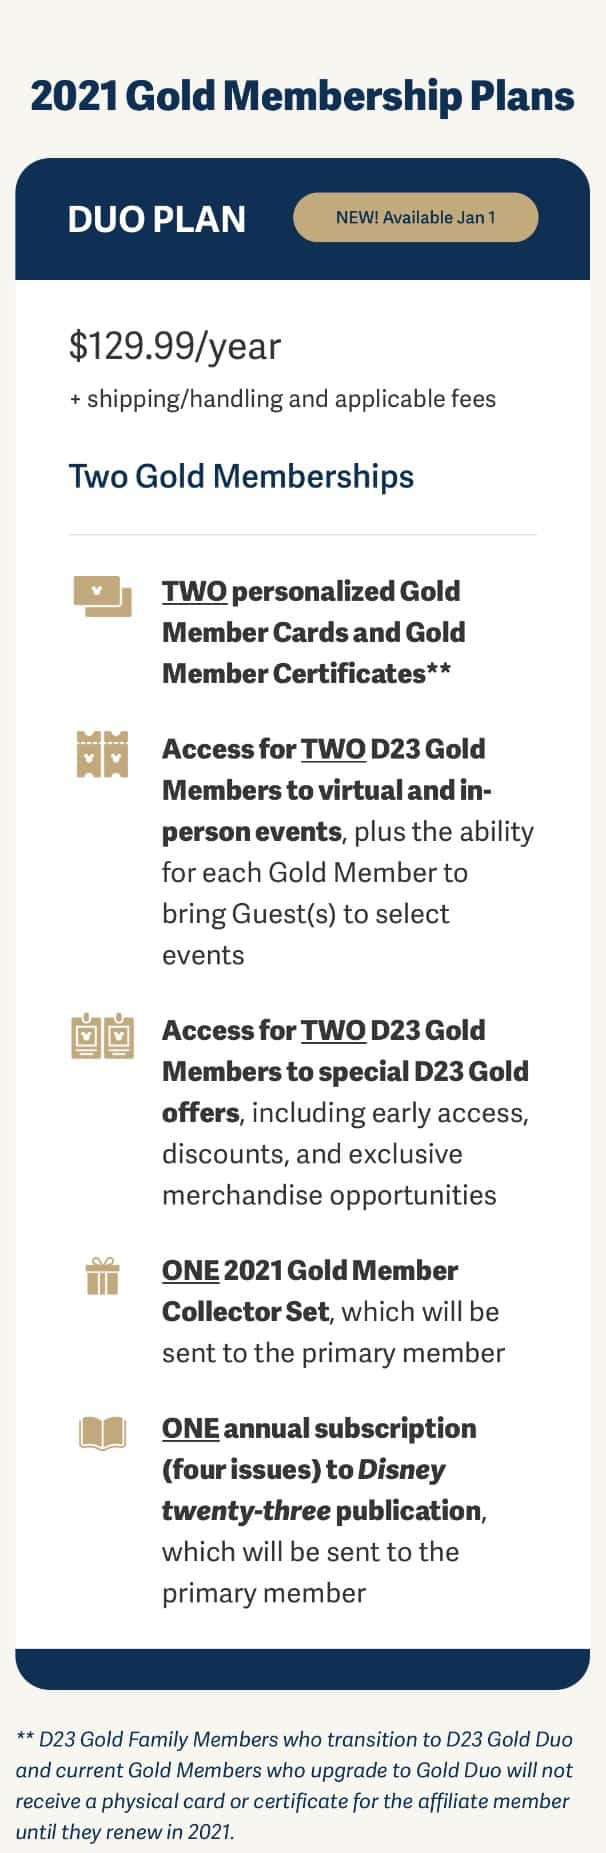 D23 Gold Duo Membership info